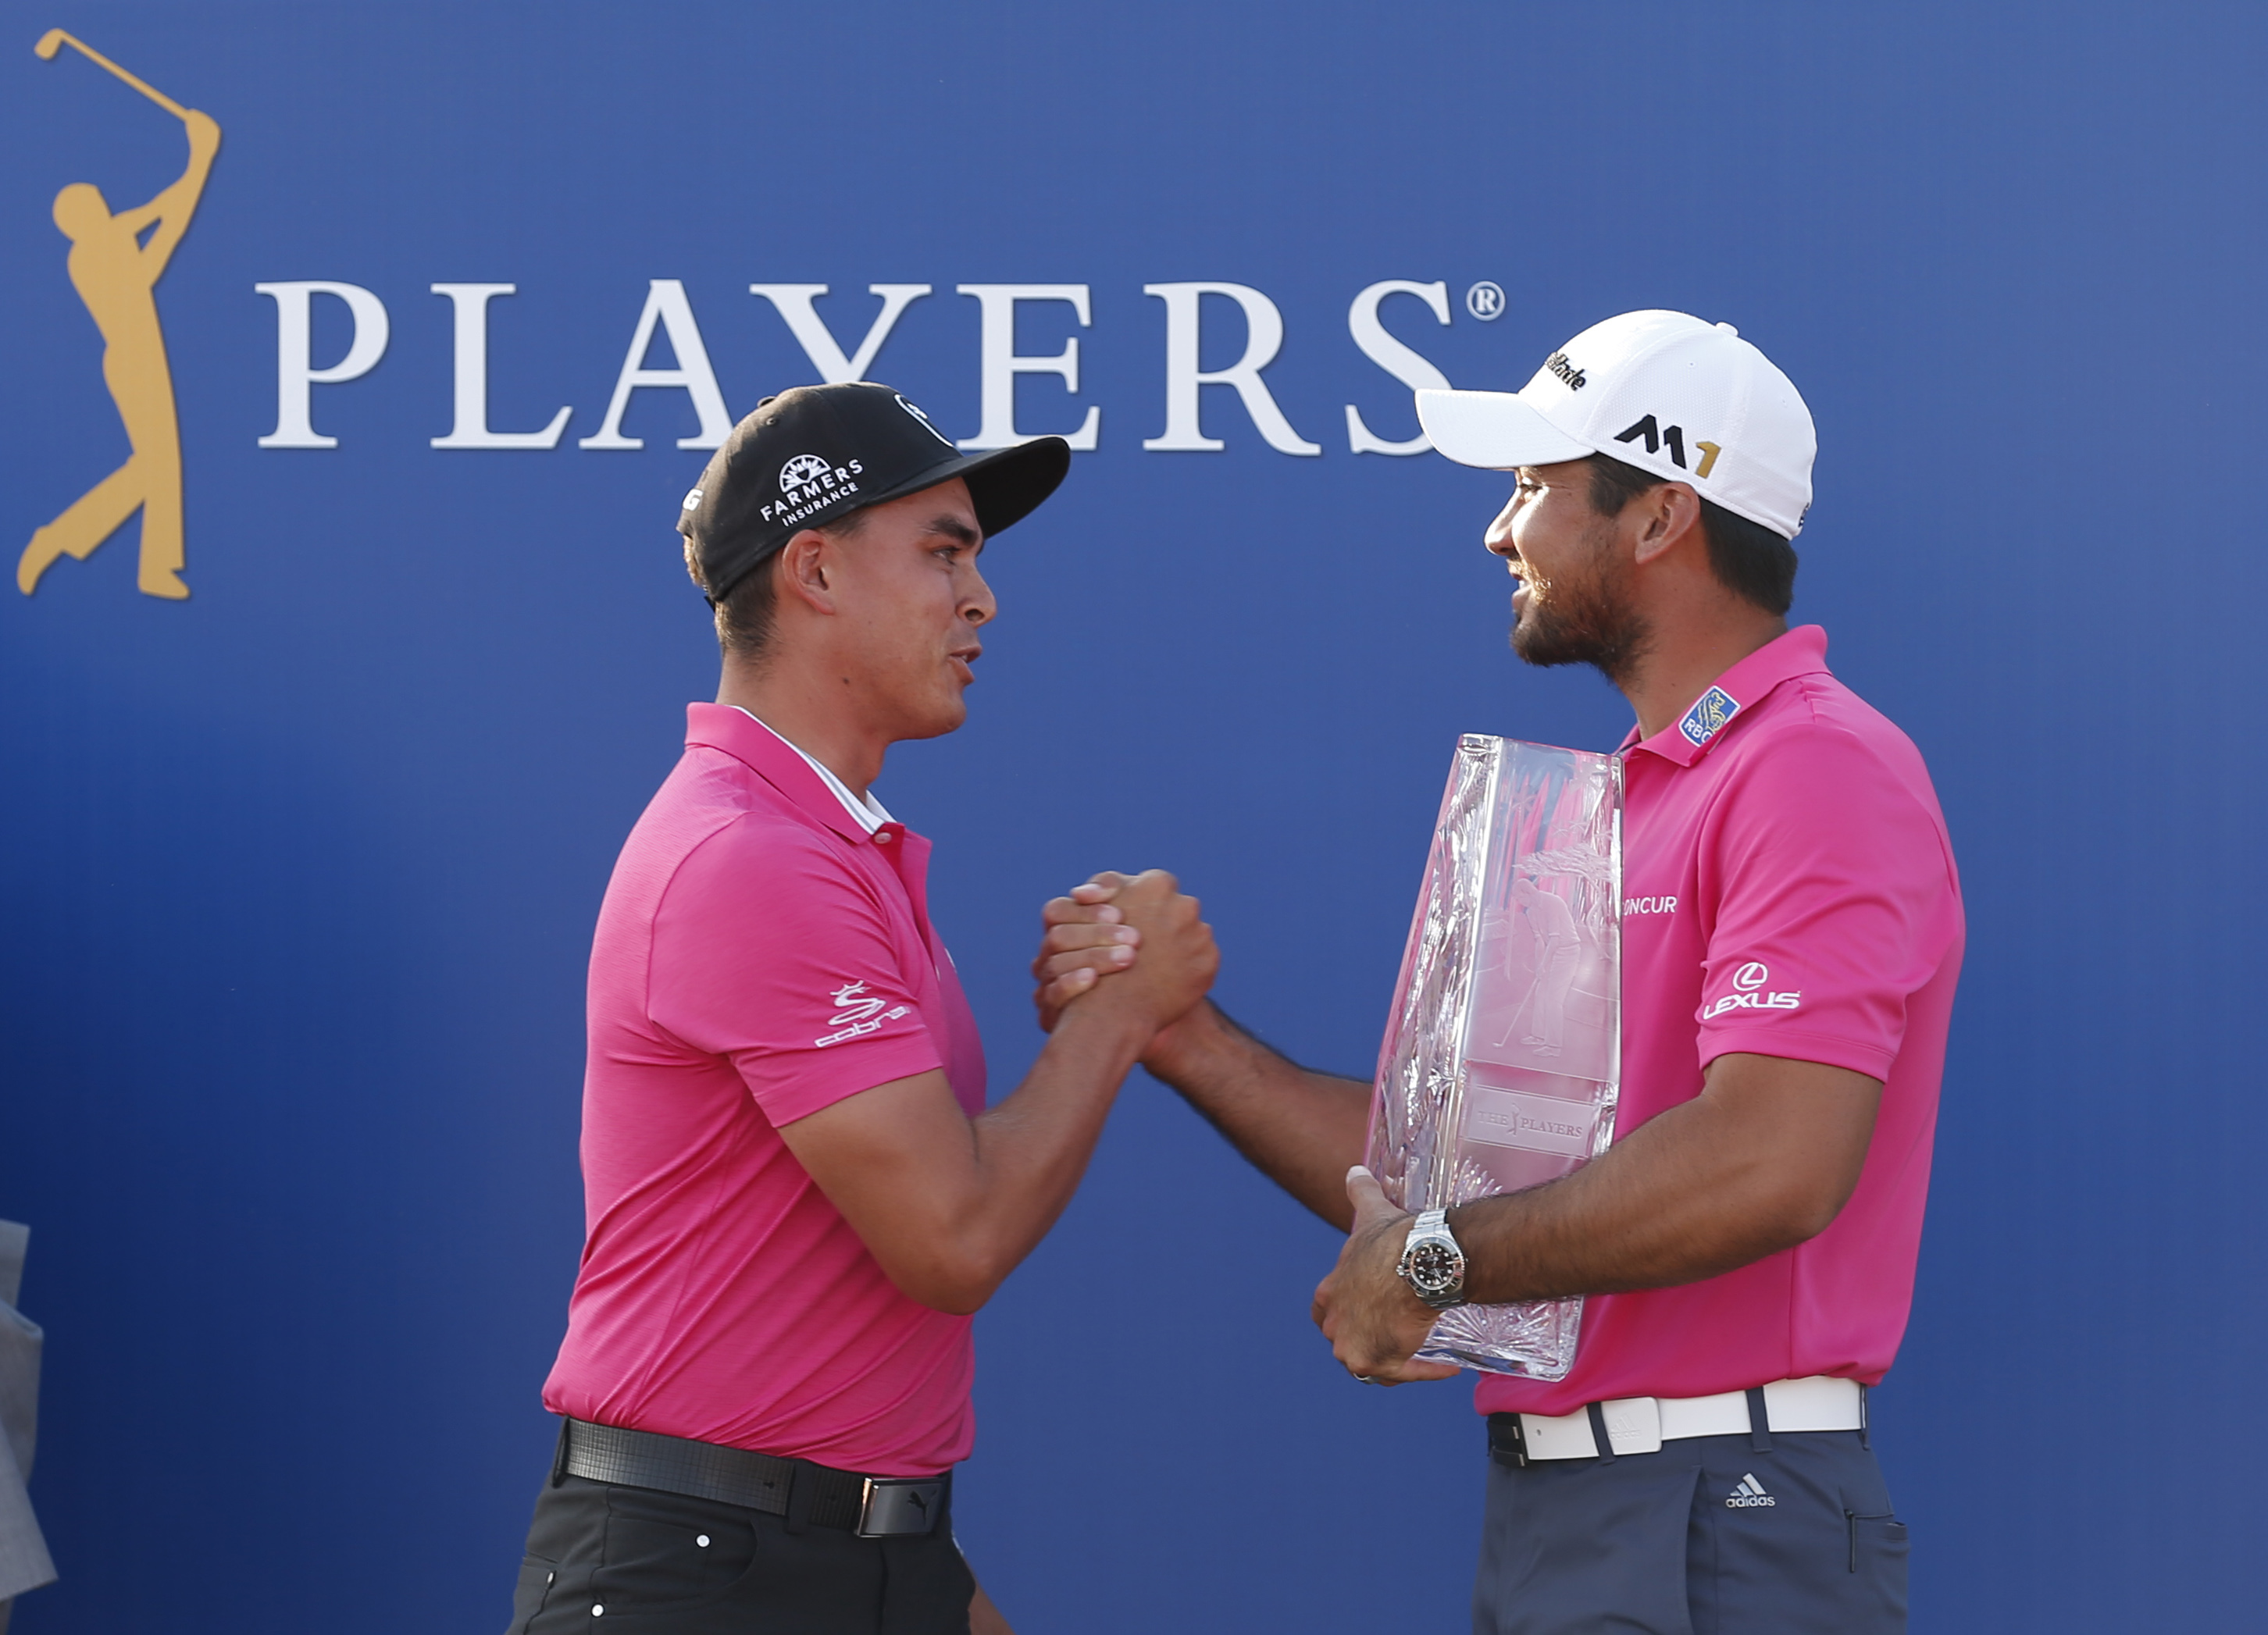 THE PLAYERS Championship 2017: Round 1 & 2 tee times